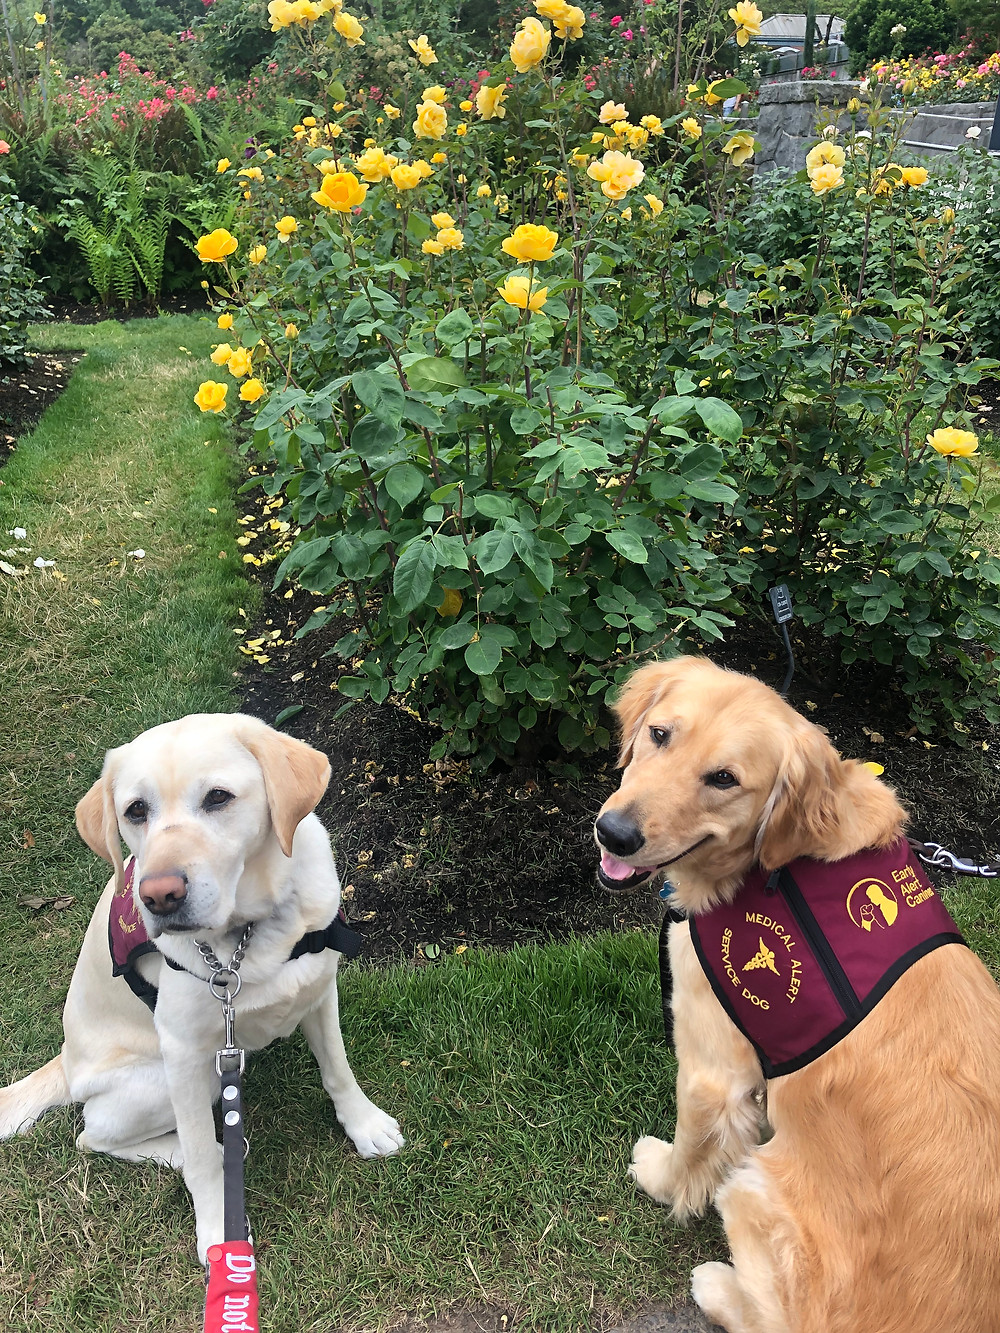 Ricki and Sumner at the rose garden, posing in front of a large rose bush with yellow roses. Sumner is smiling, and Ricki looks unamused.